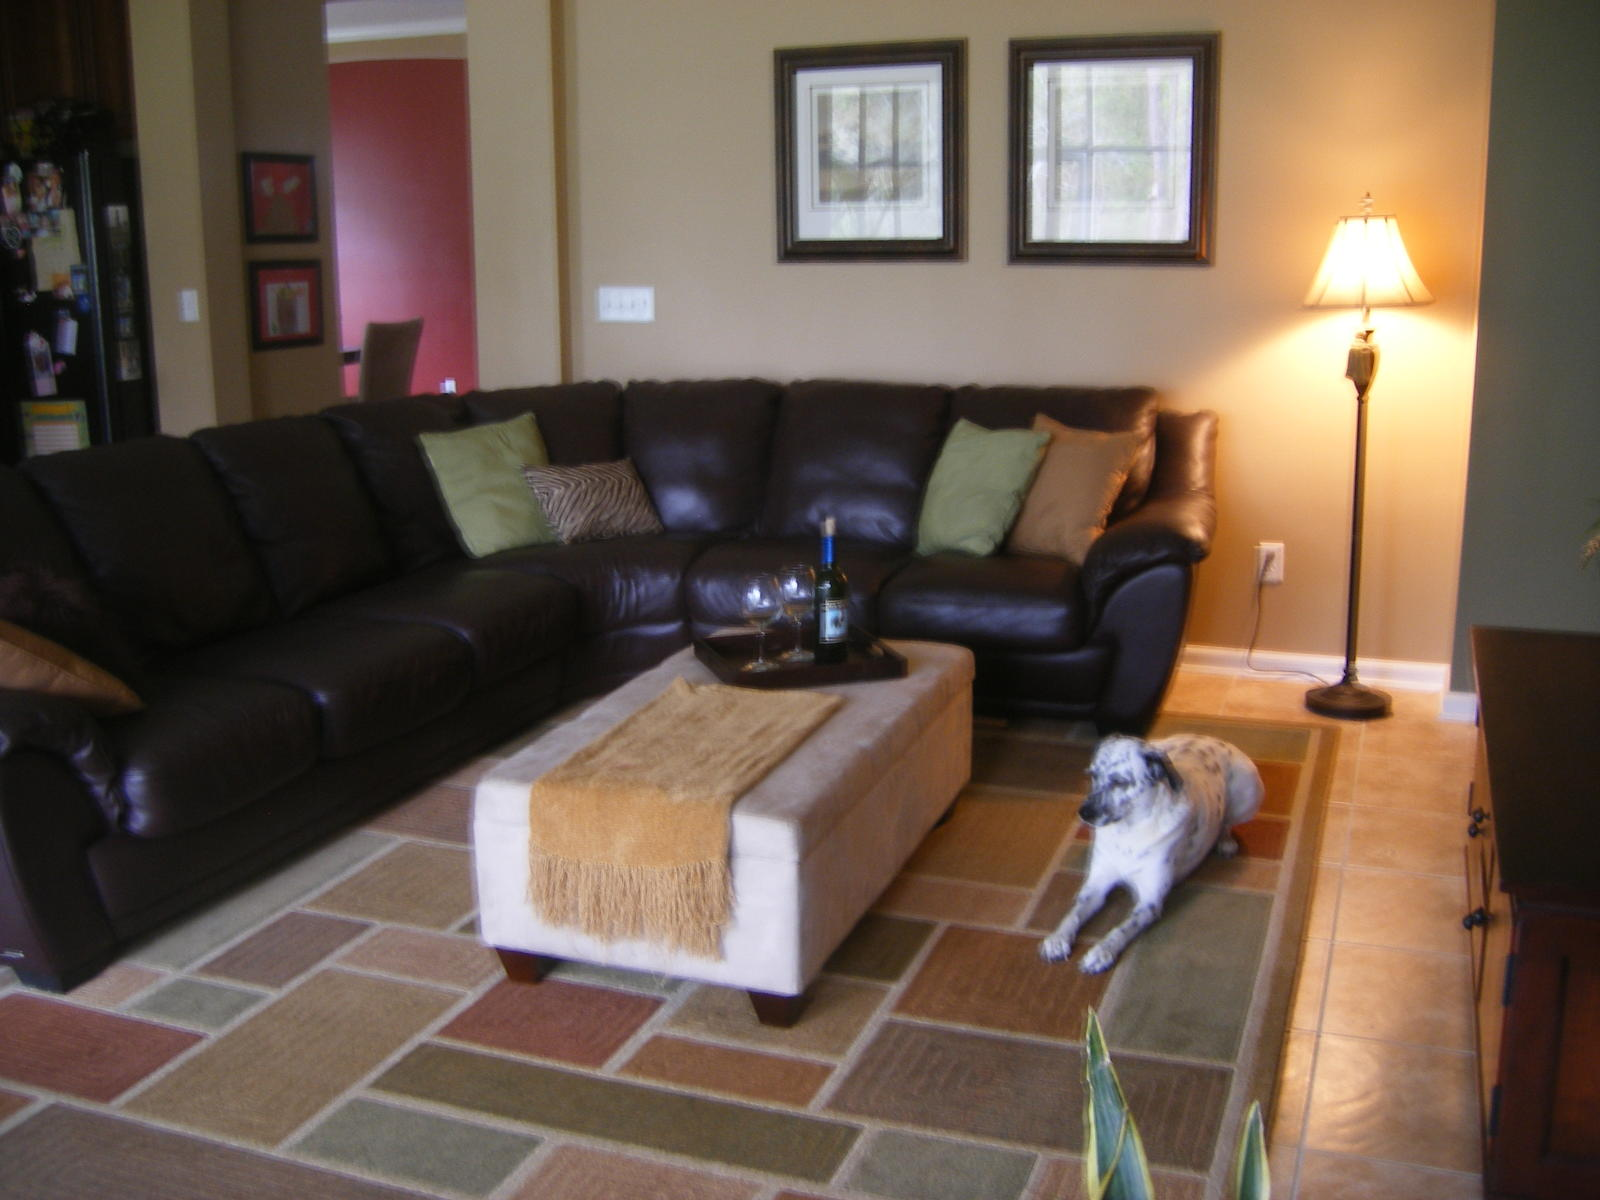 Decorating with leather sofa (mirror, hardwood floors, fireplace ...